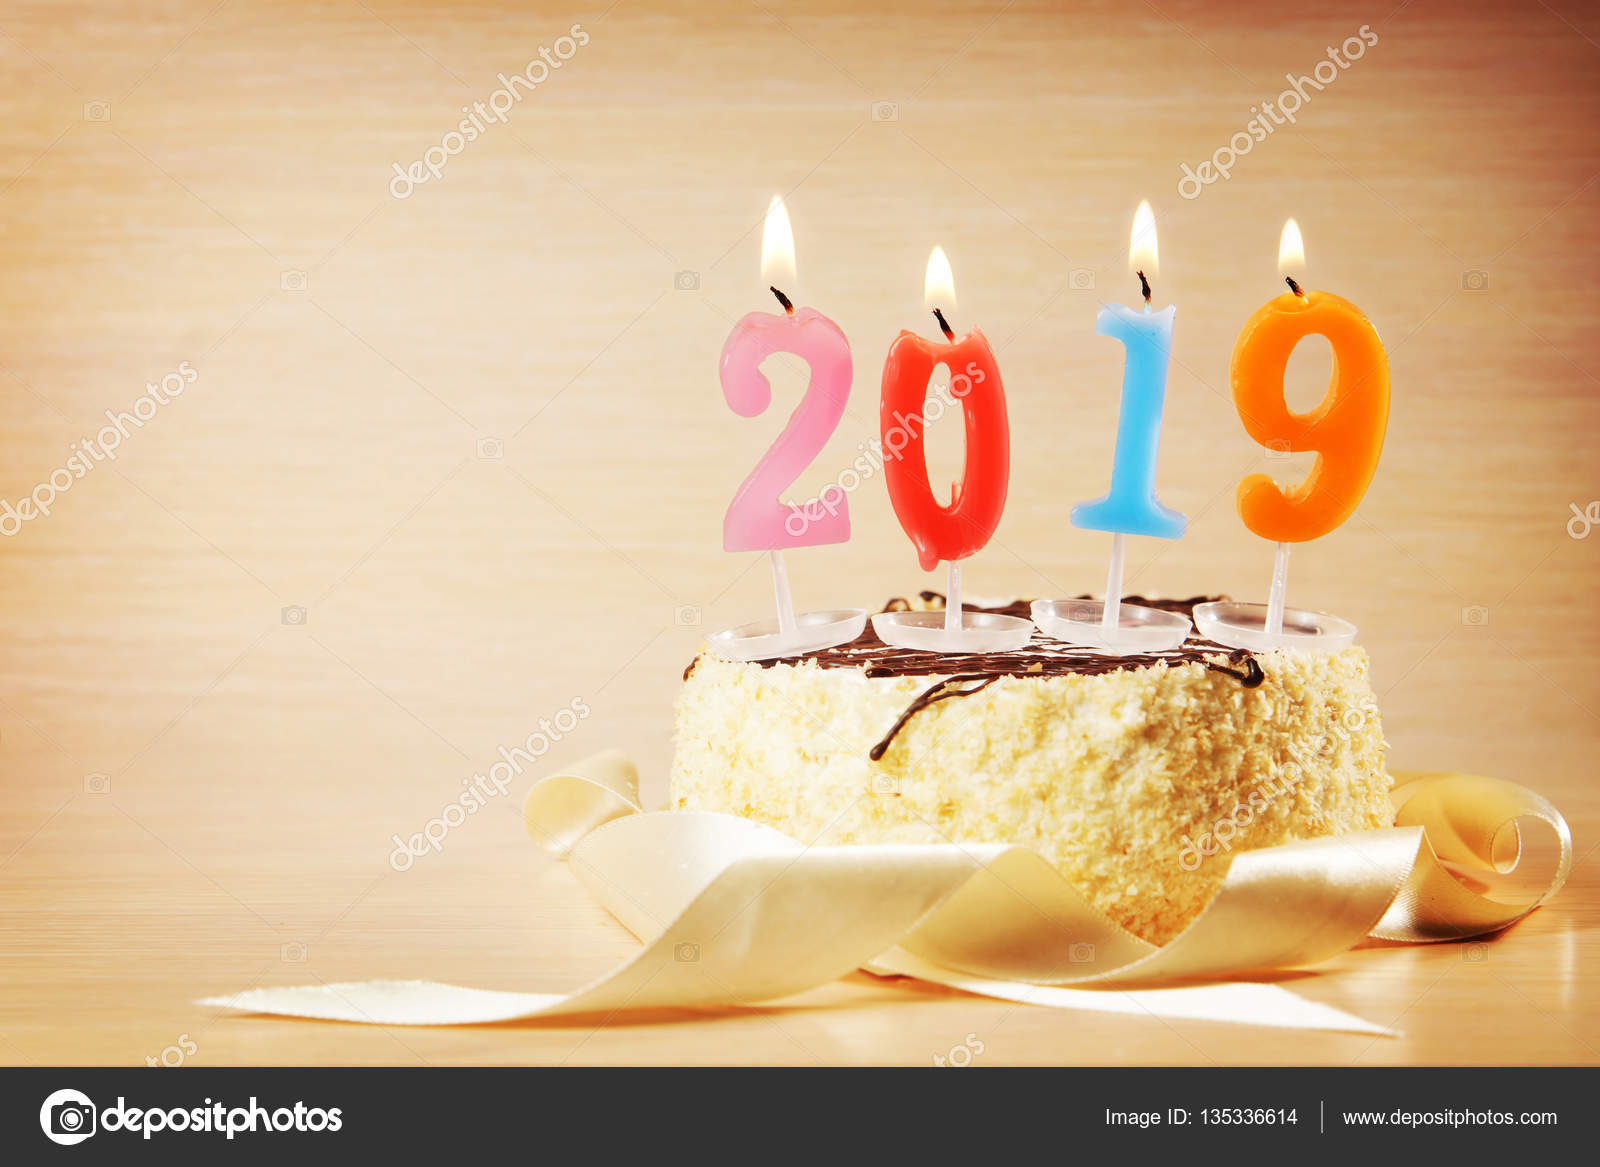 Cakes for the New Year 2019 67